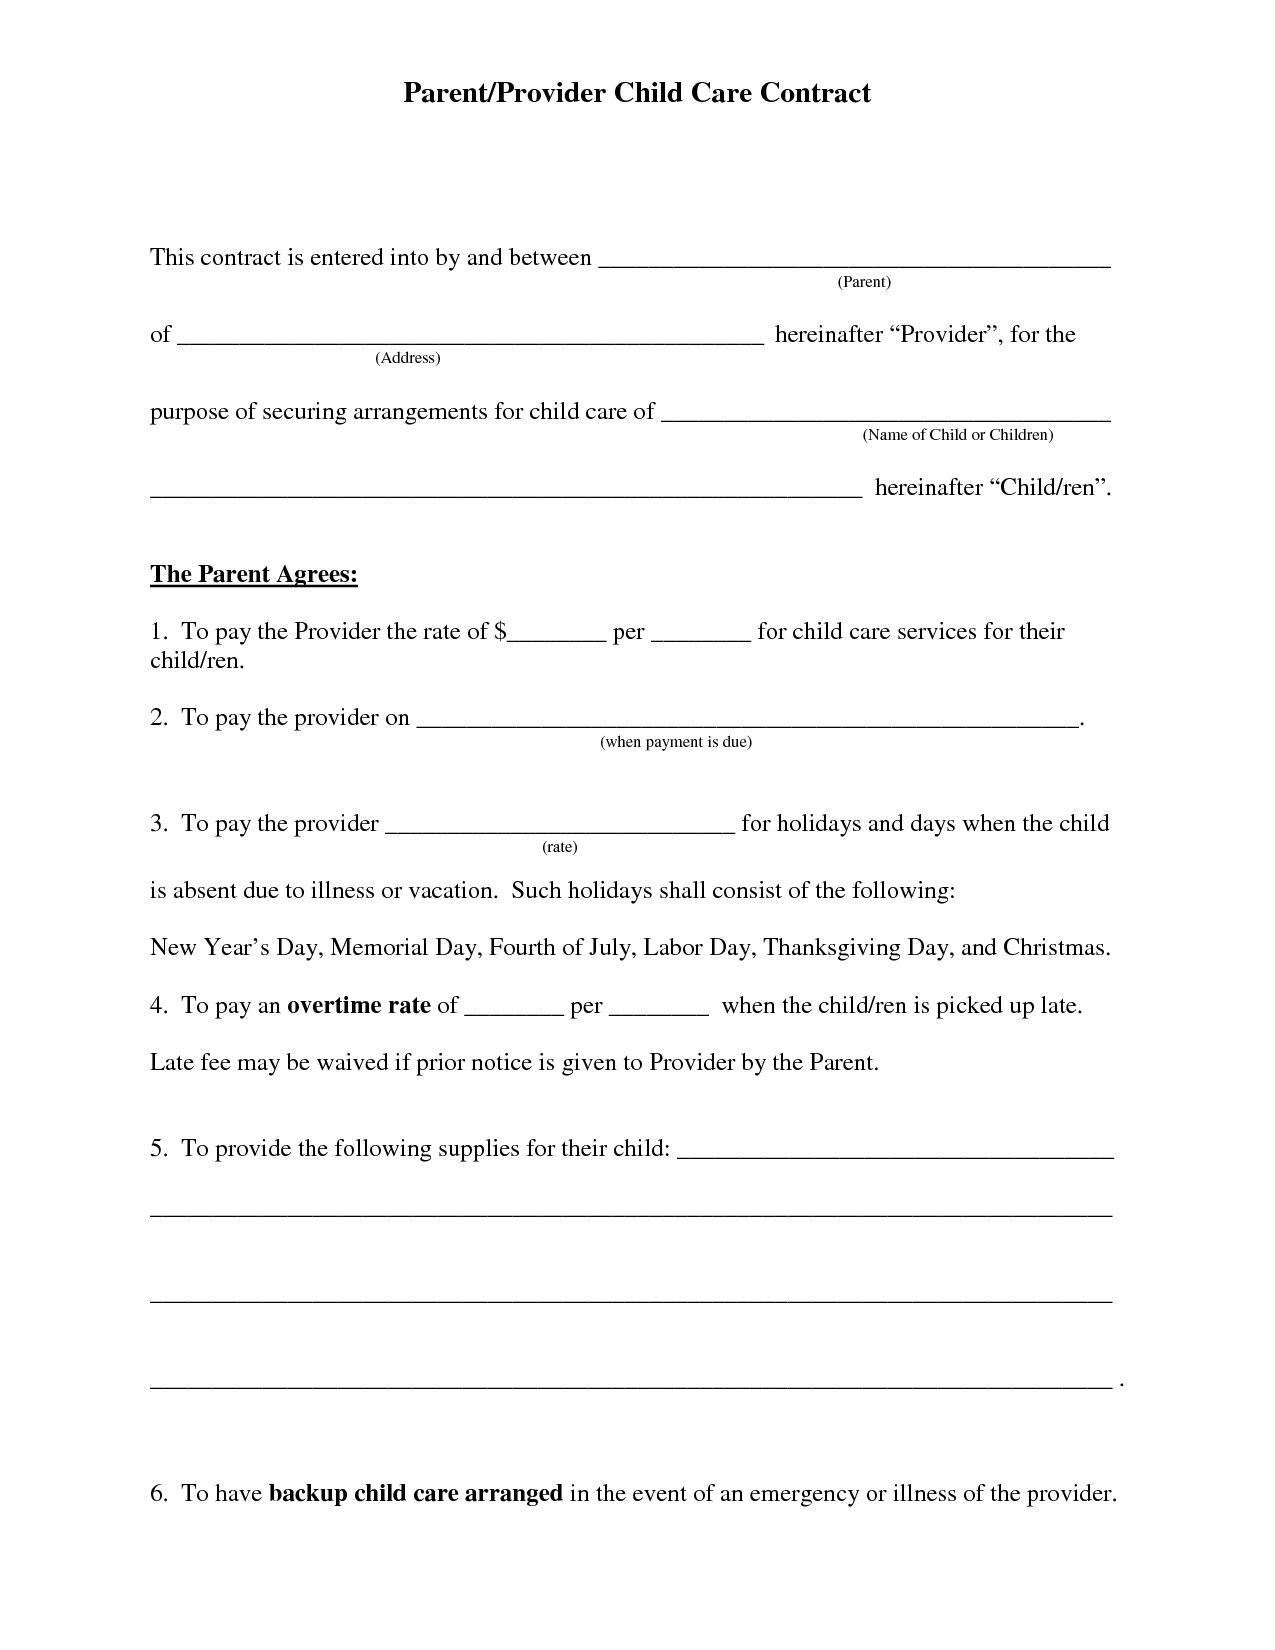 Free Daycare Contract Forms | Daycare Forms | Daycare Contract - Free Printable Daycare Forms